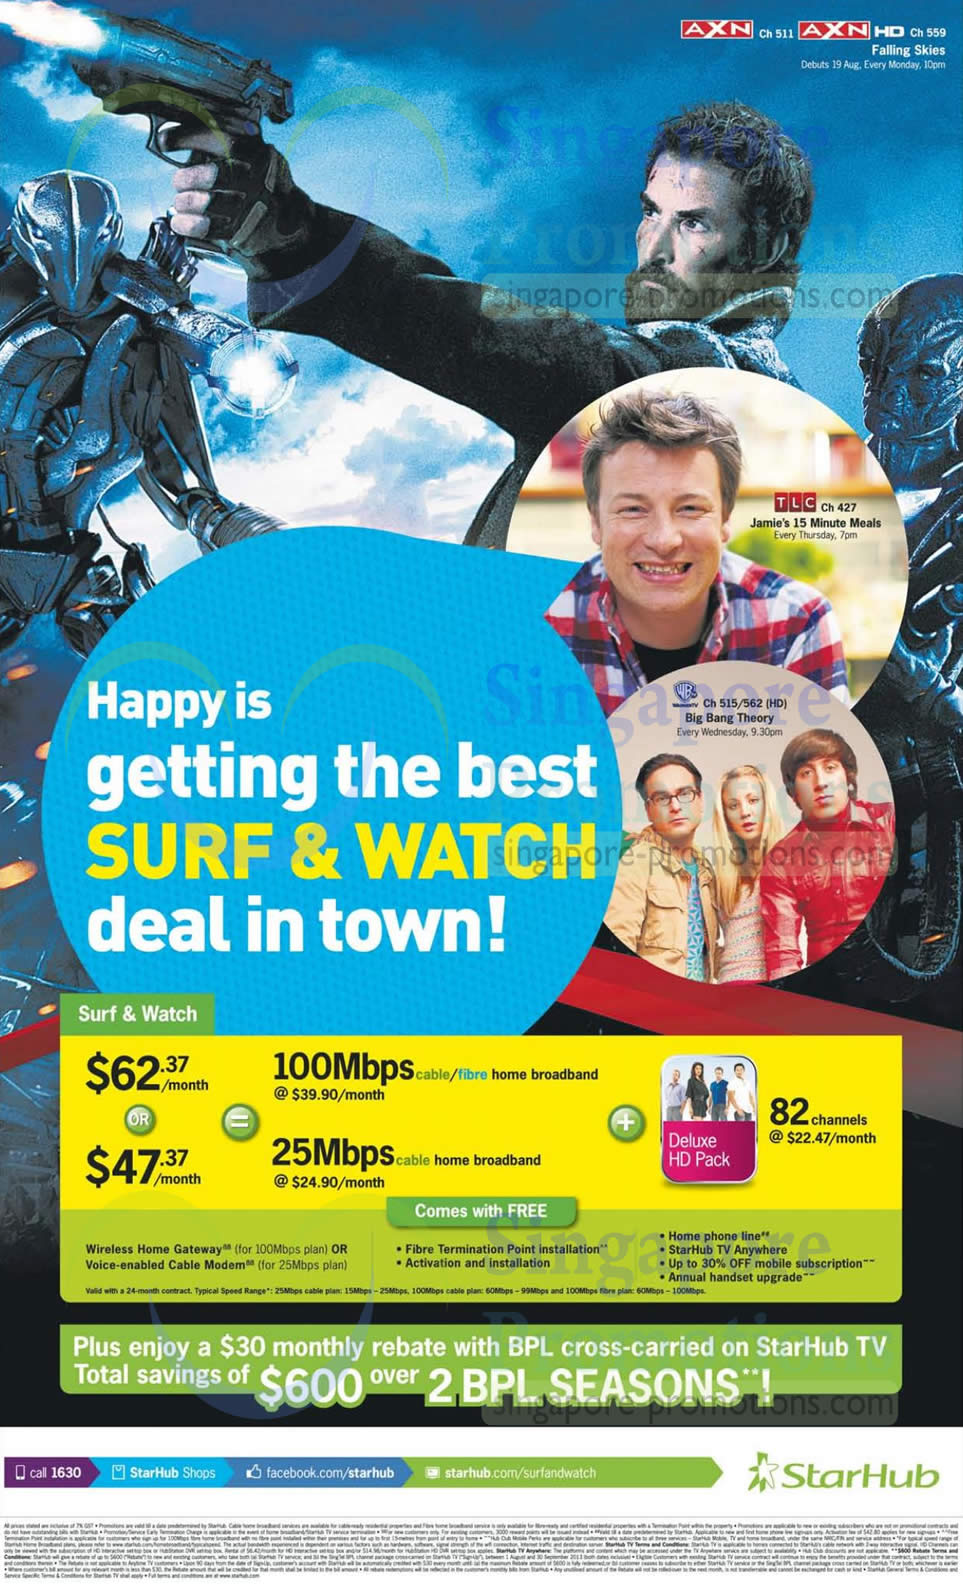 Surf n Watch Fibre Broadband, Cable Broadband From 62.37, Deluxe HD Pack, 600 BPL Rebate